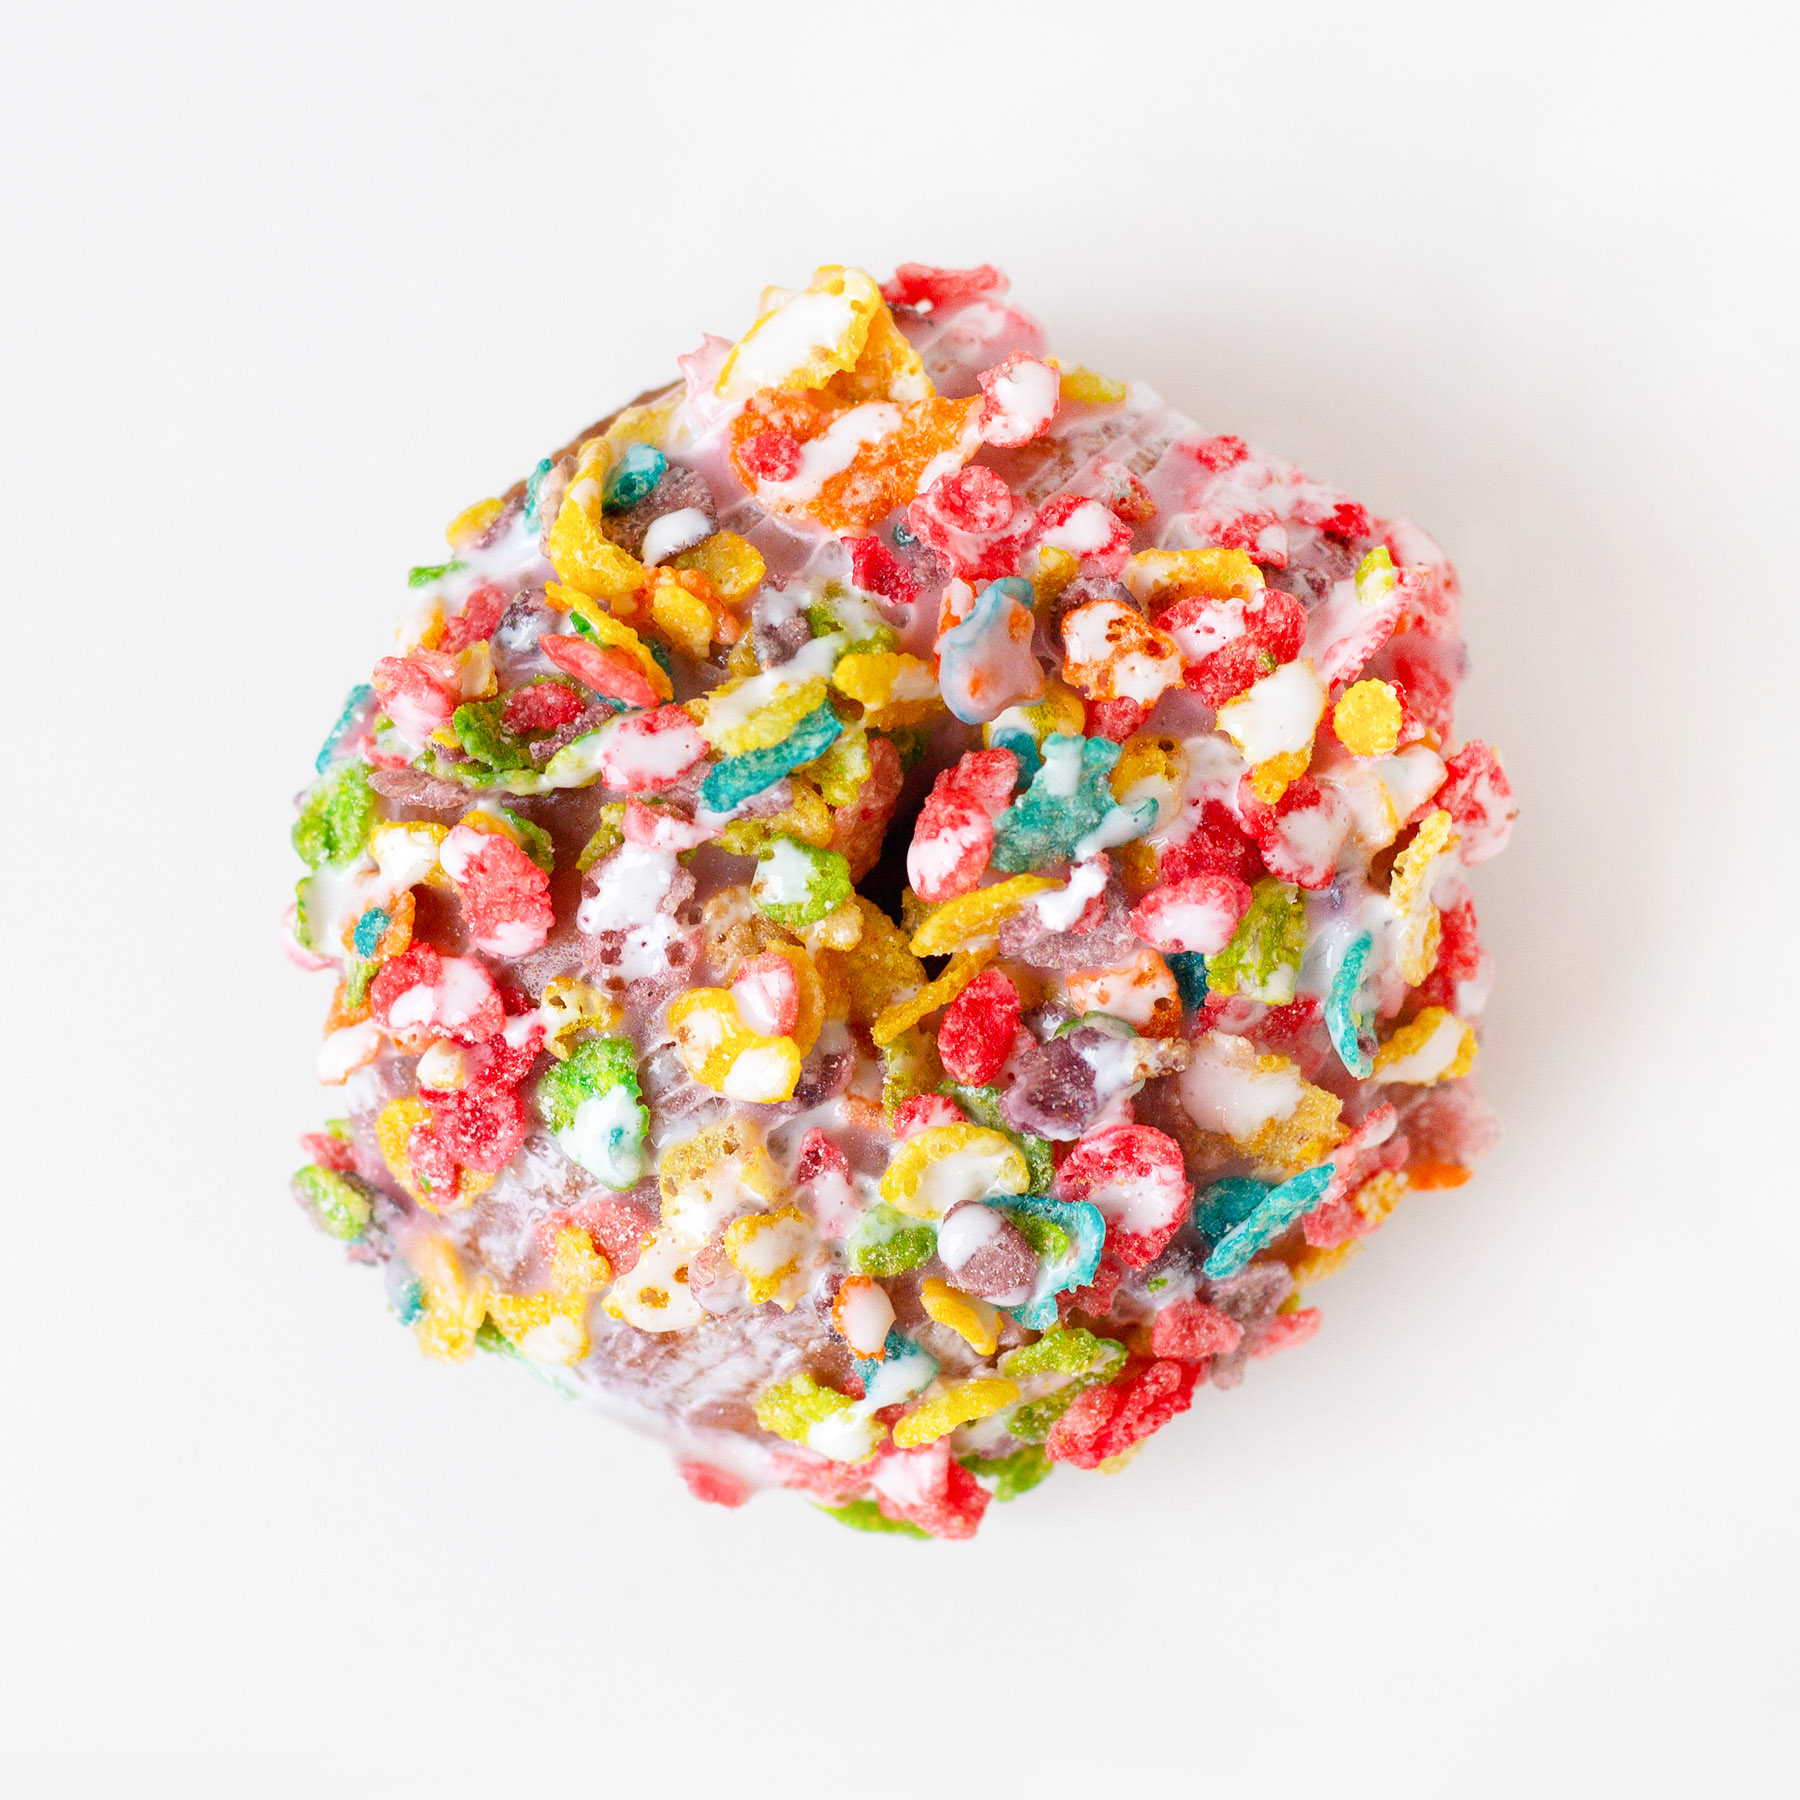 Mermaid's Delight - strawberry icing, fruity pebbles, marshmallow drizzle